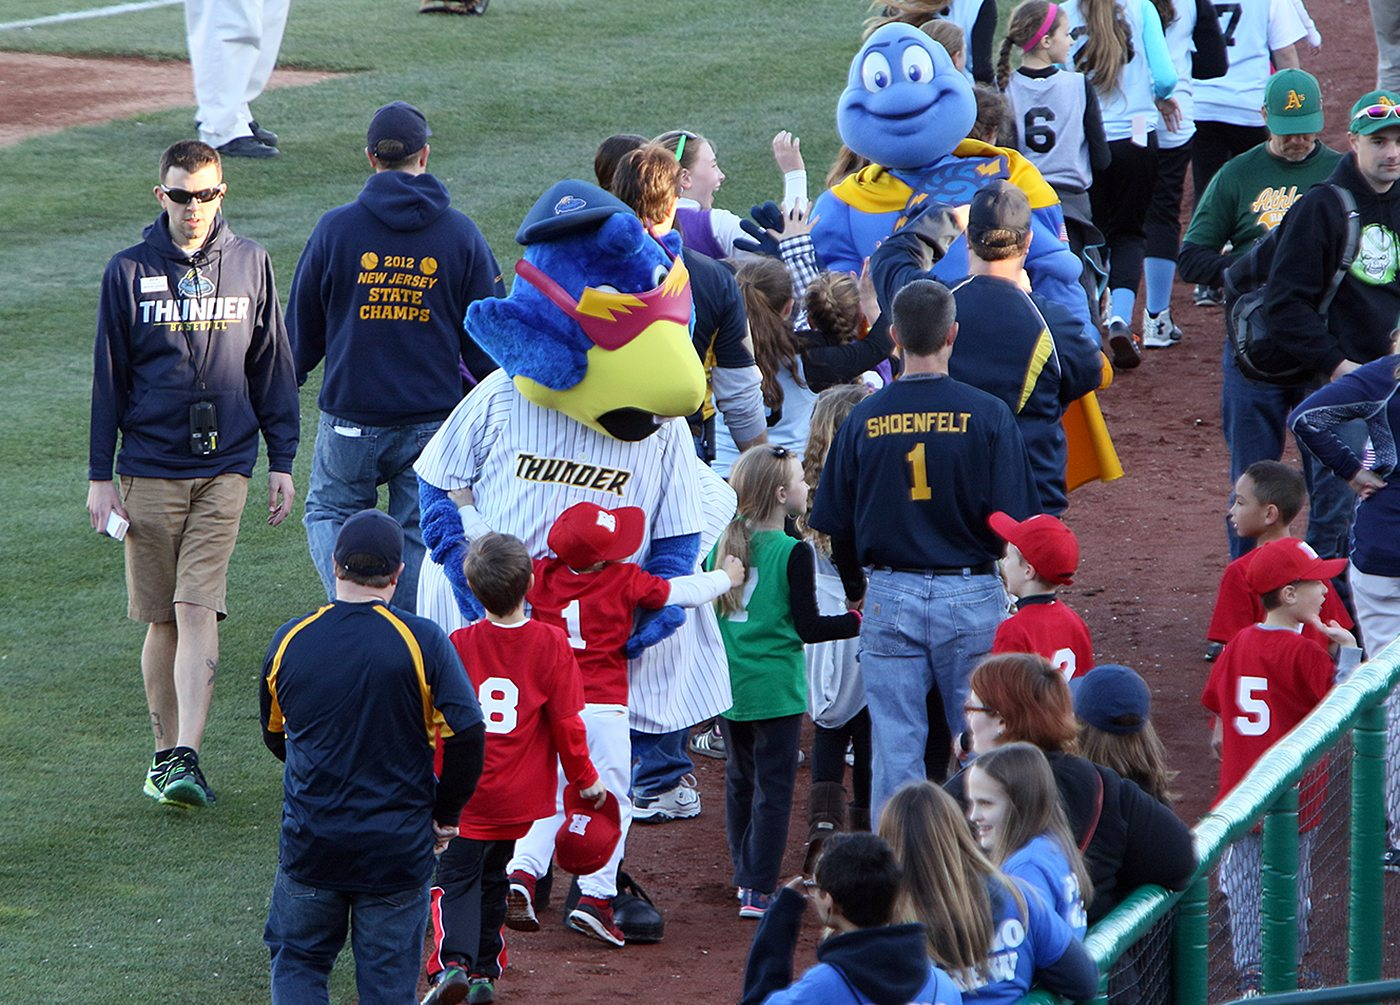 Trenton Thunder Mascots Boomer and Cloudman greet young fans before a game between the Trenton and Portland Sea Dogs at Arm & Hammer Park in Trenton on Tuesday, April 12, 2016. Photo by Martin Griff